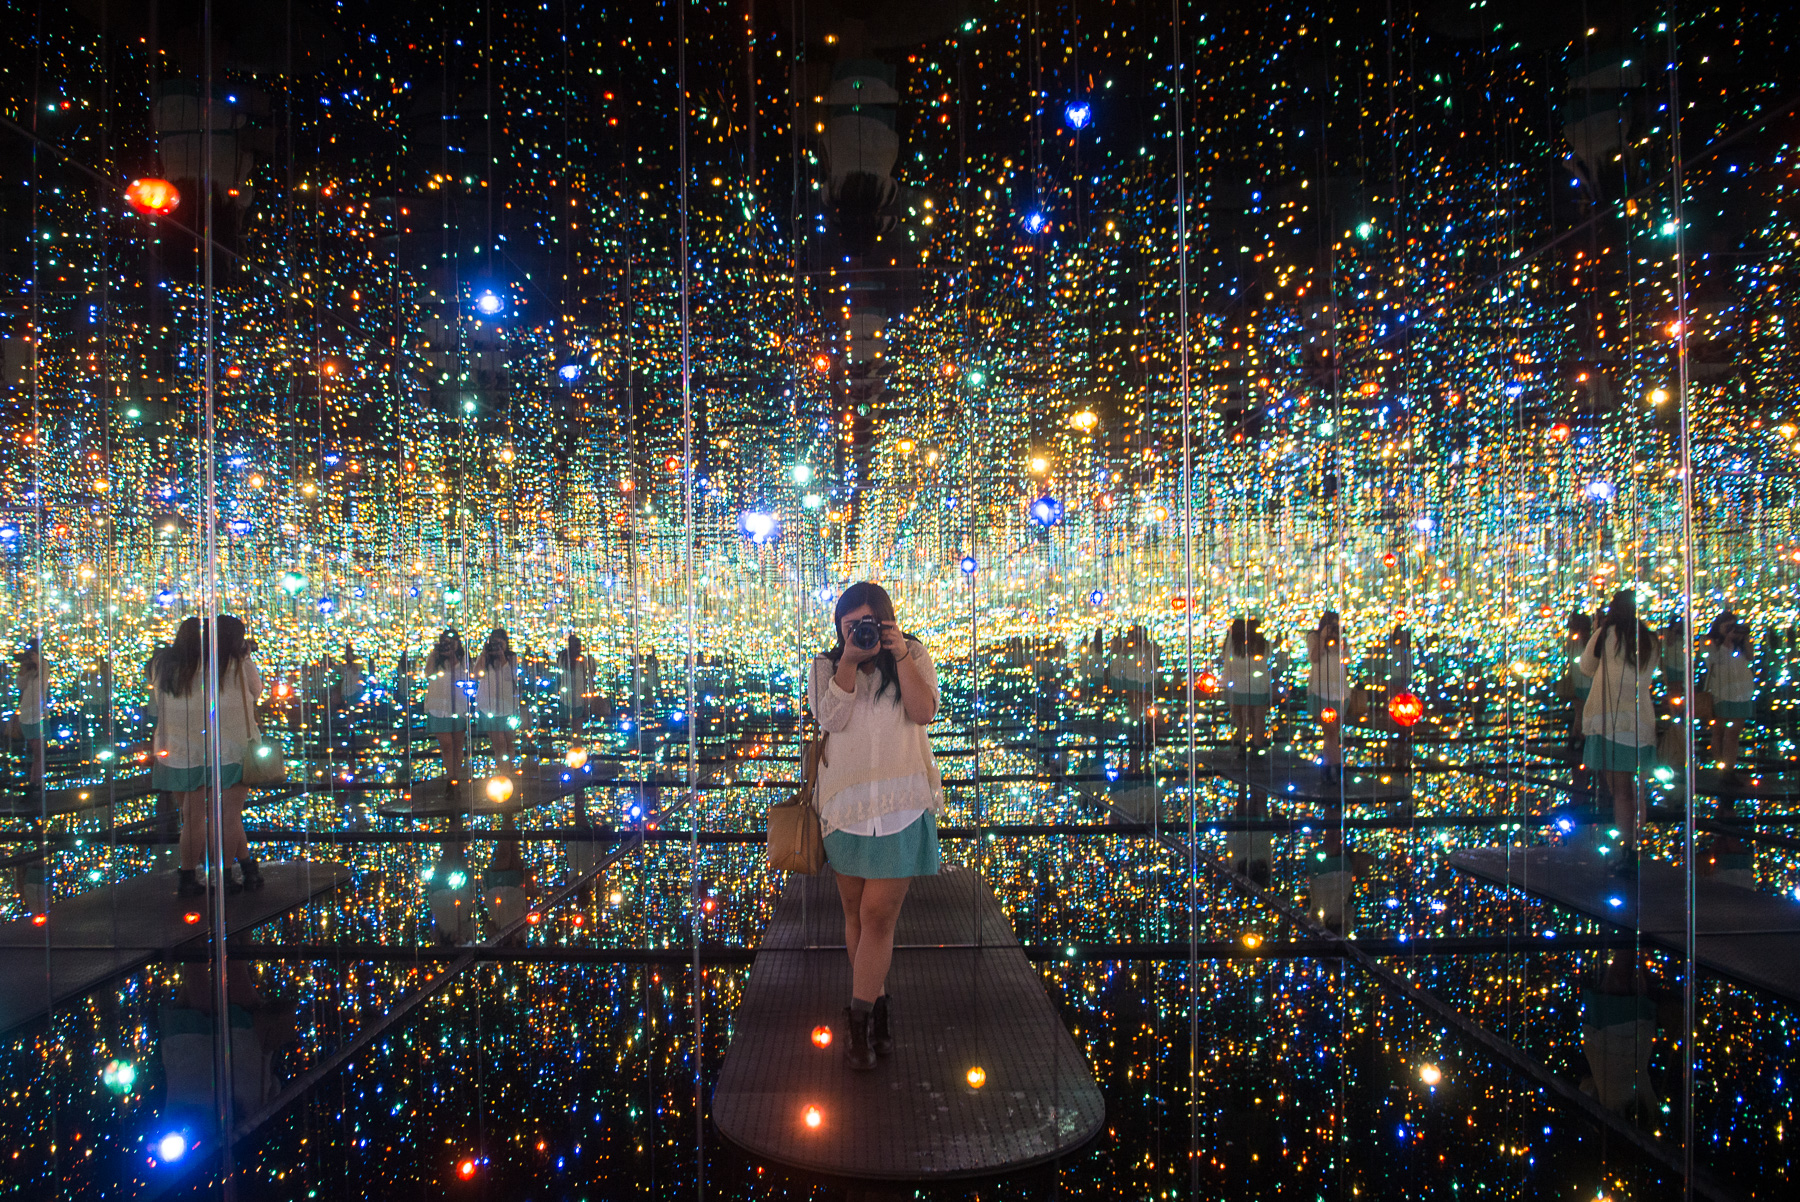 Yayoi Kusama's 'Infinite Mirrored Room' - The Souls of Millions of Light Years Away